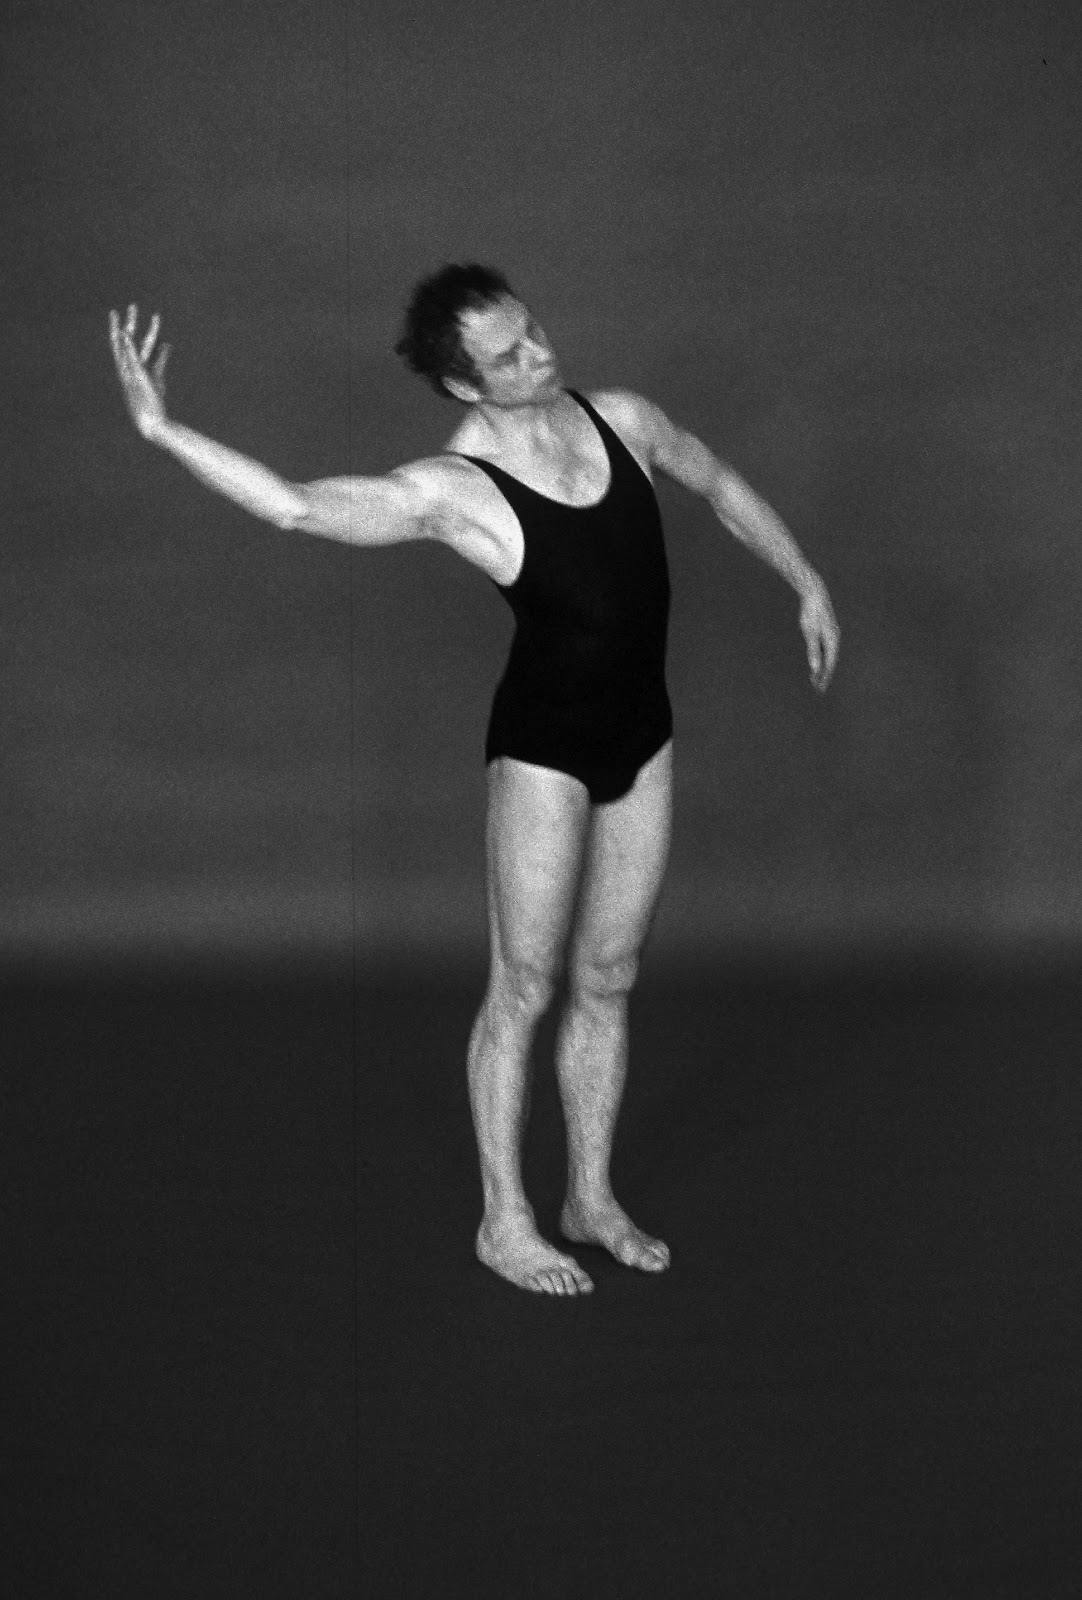 merce cunningham Merce cunningham was born on april 16, 1919 in centralia, washington, usa as mercier philip cunningham he is known for his work on deli commedia.